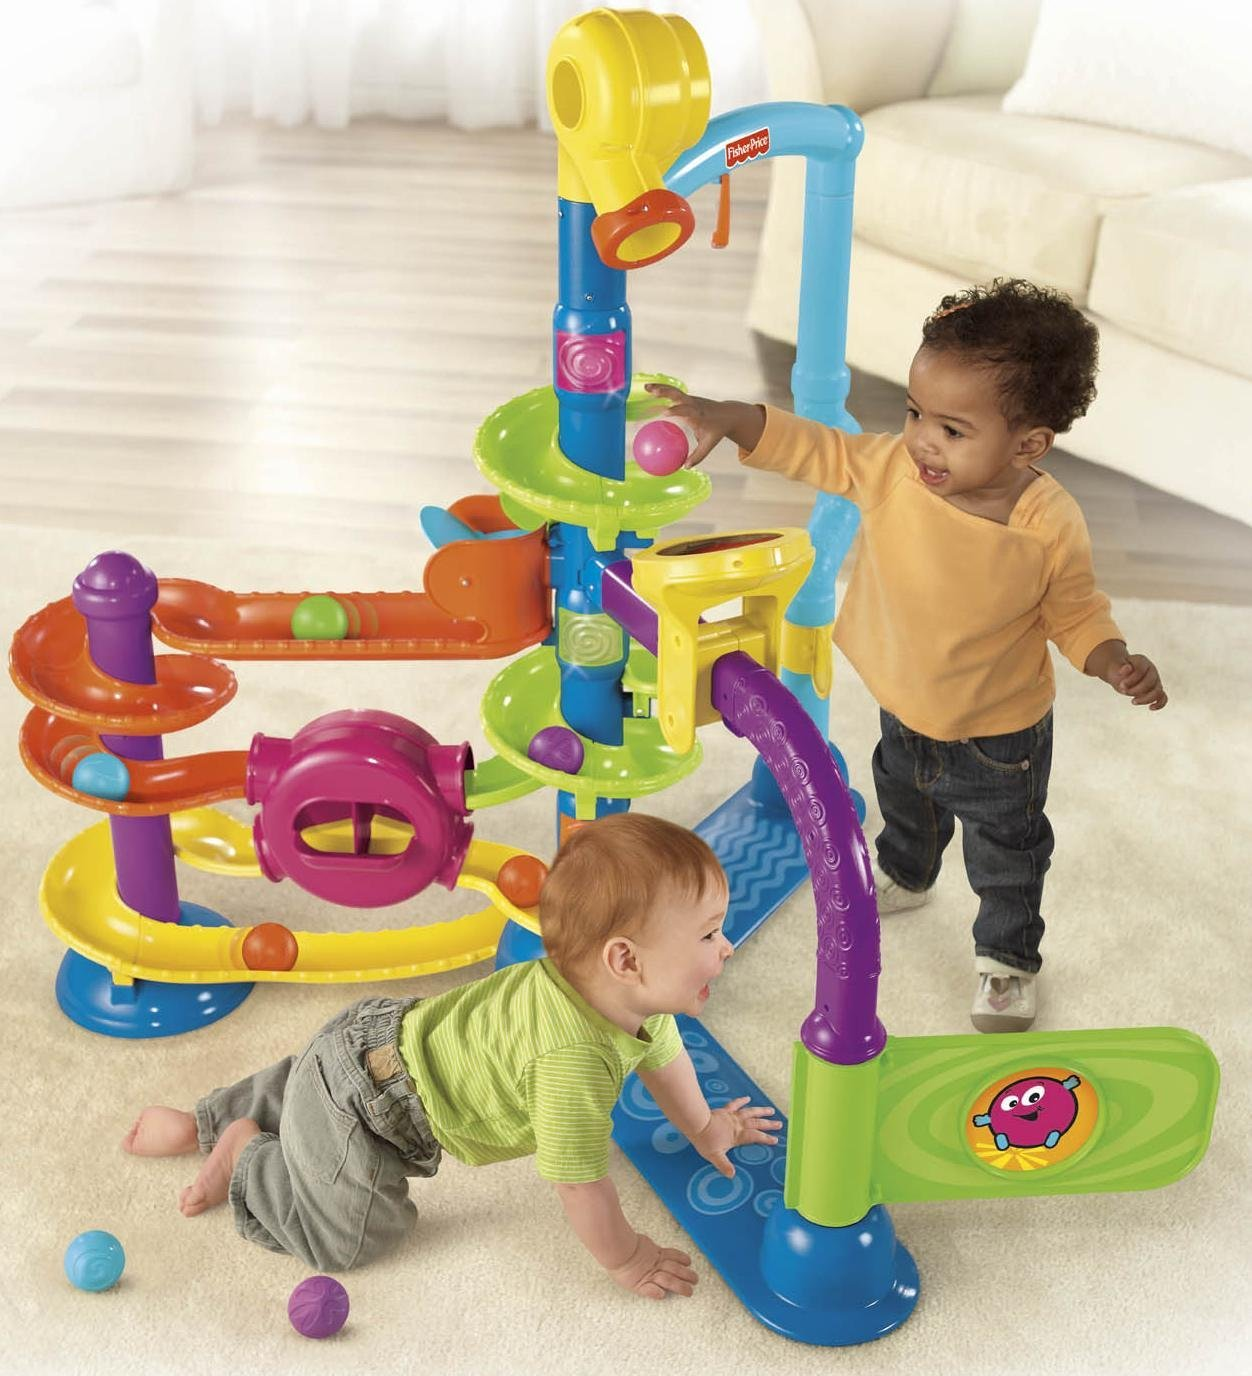 Toys For 1 Year Olds : Best gifts ideas for one year old boys first christmas